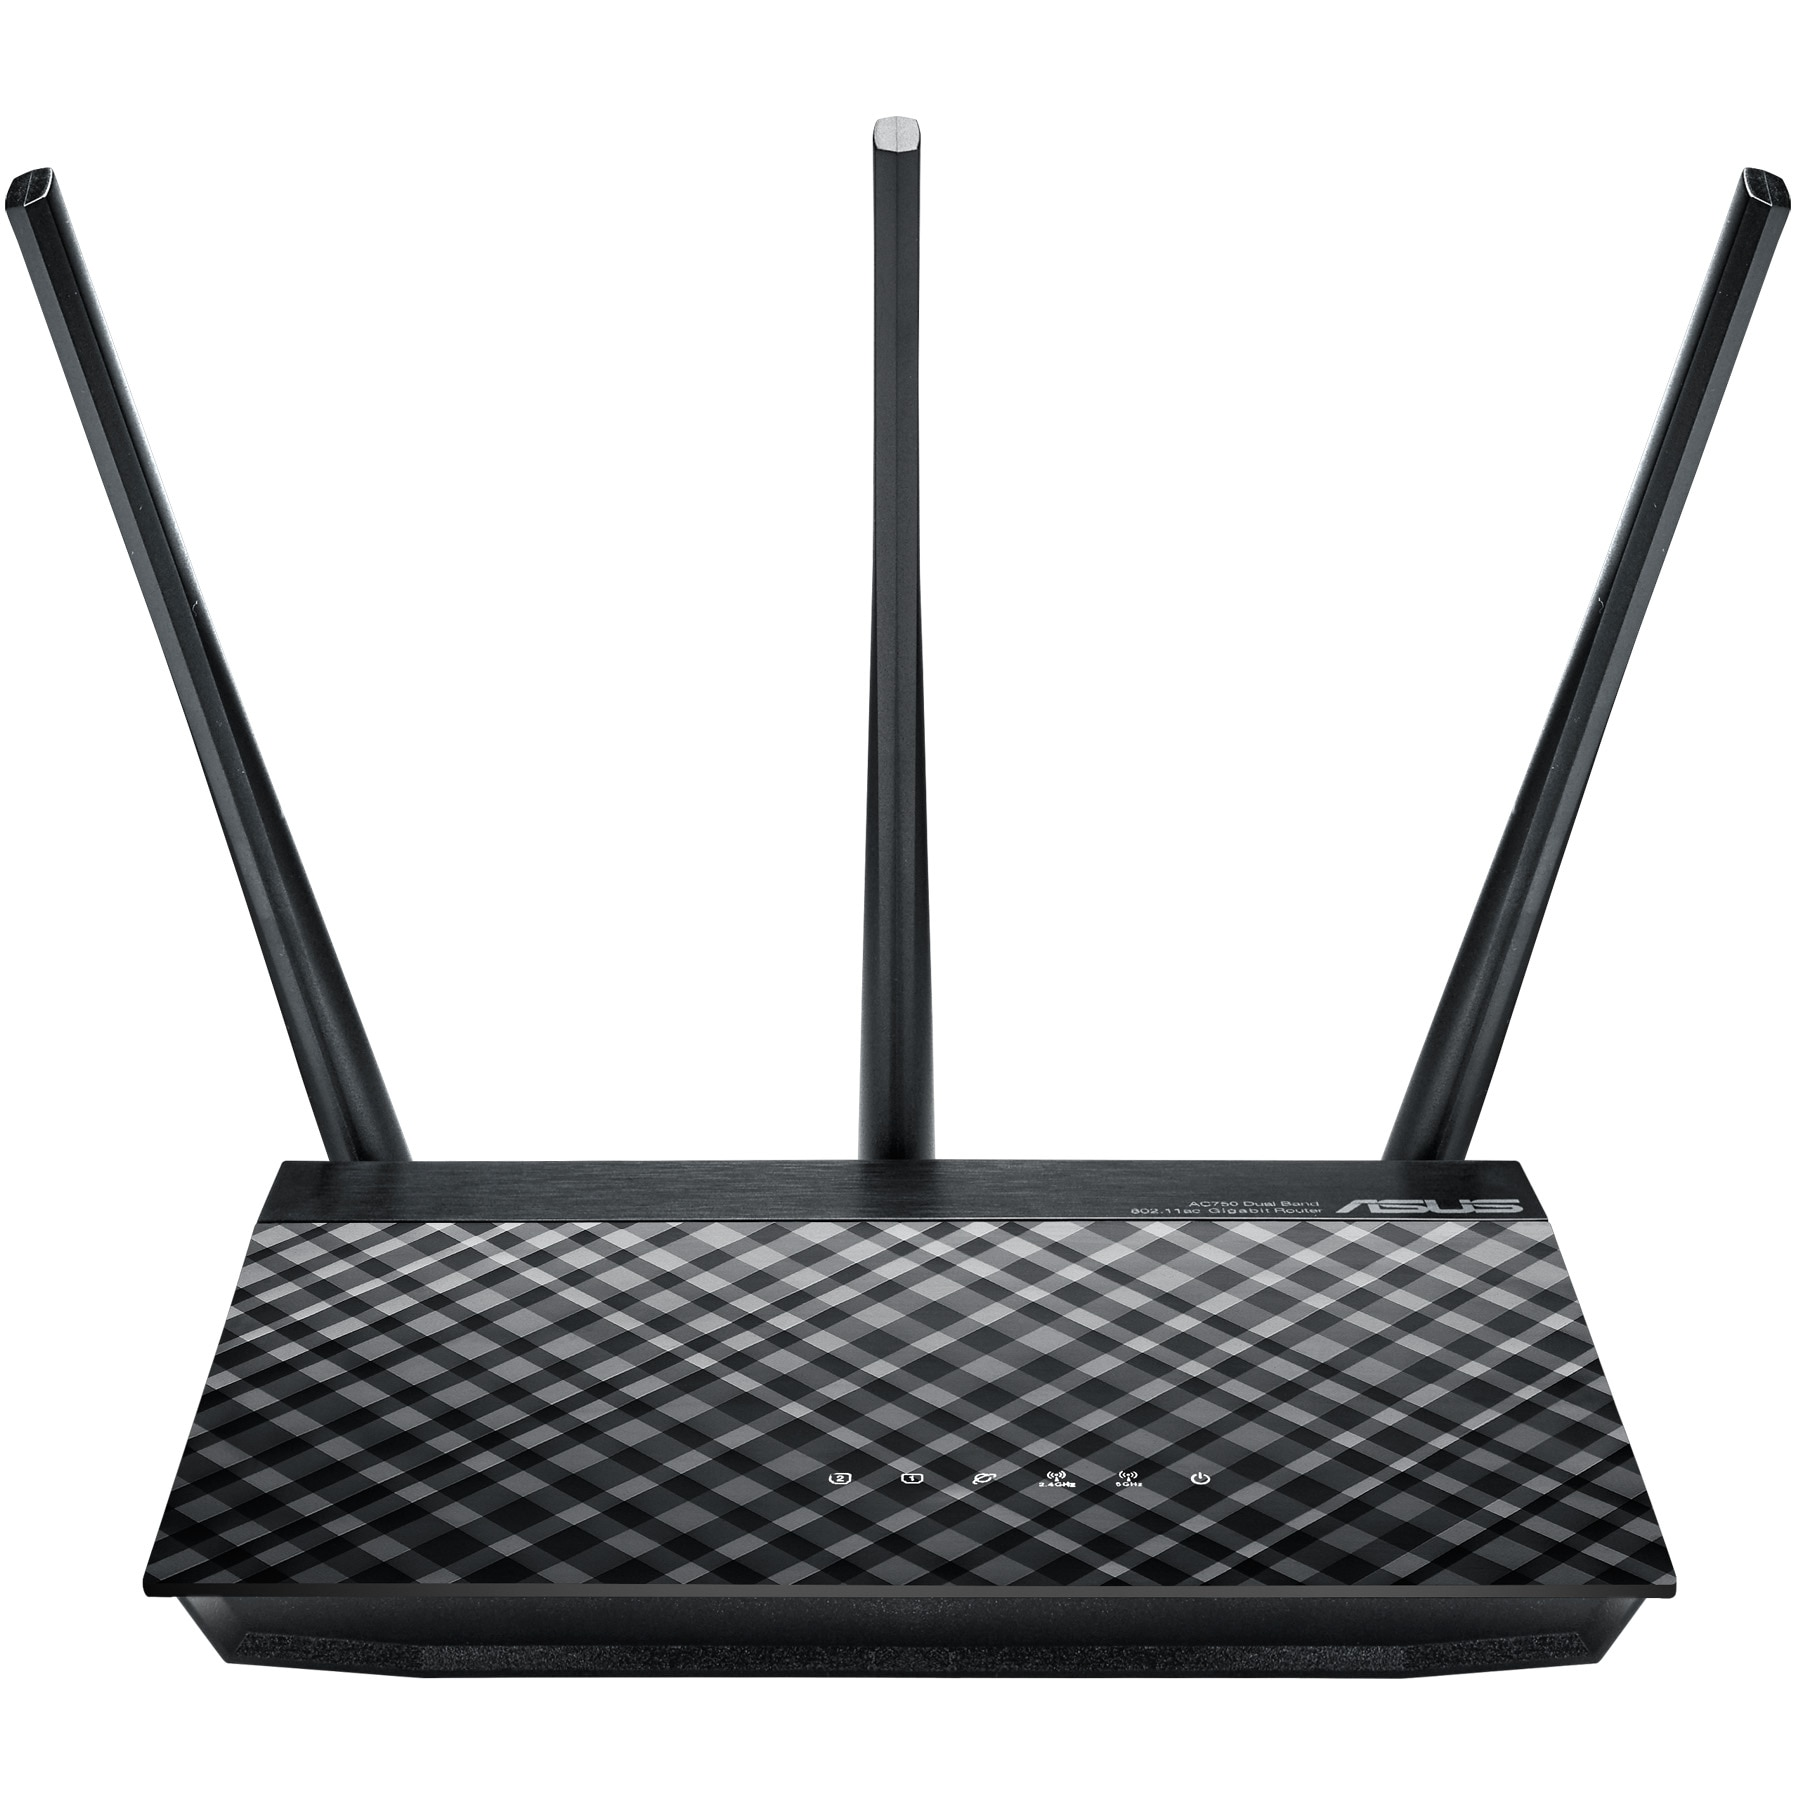 Fotografie Router wireless ASUS RT-AC53, Dual Band AC 750 Gigabit Router